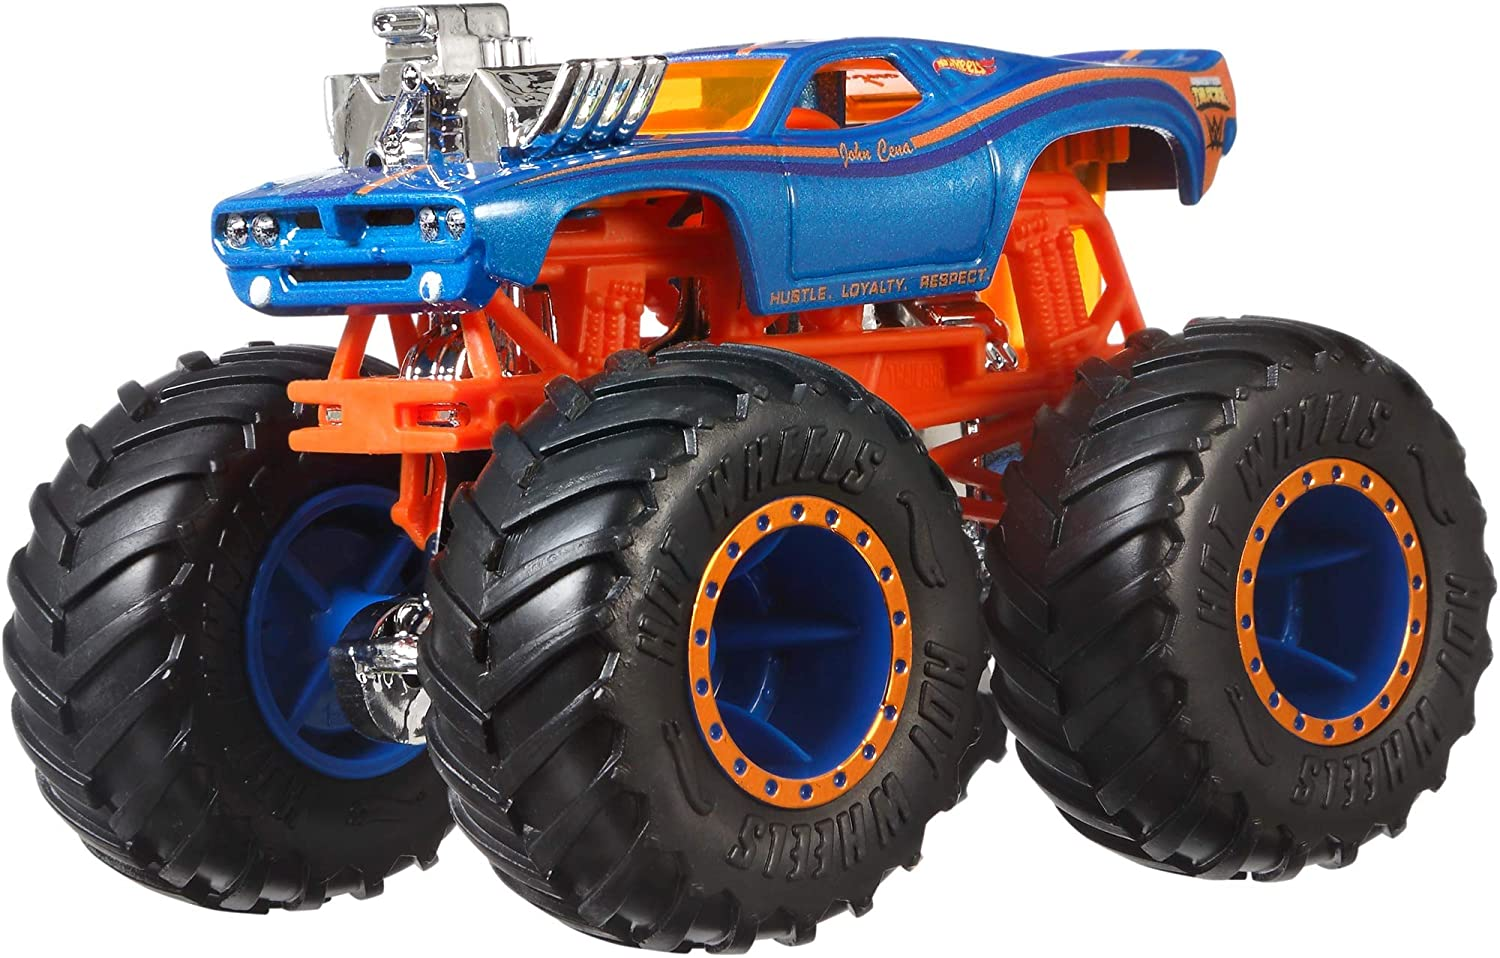 Buy Hot Wheels Monster Trucks 1 64 Wwe Themed Car Assortments Color And Design May Vary Online At Low Prices In India Amazon In